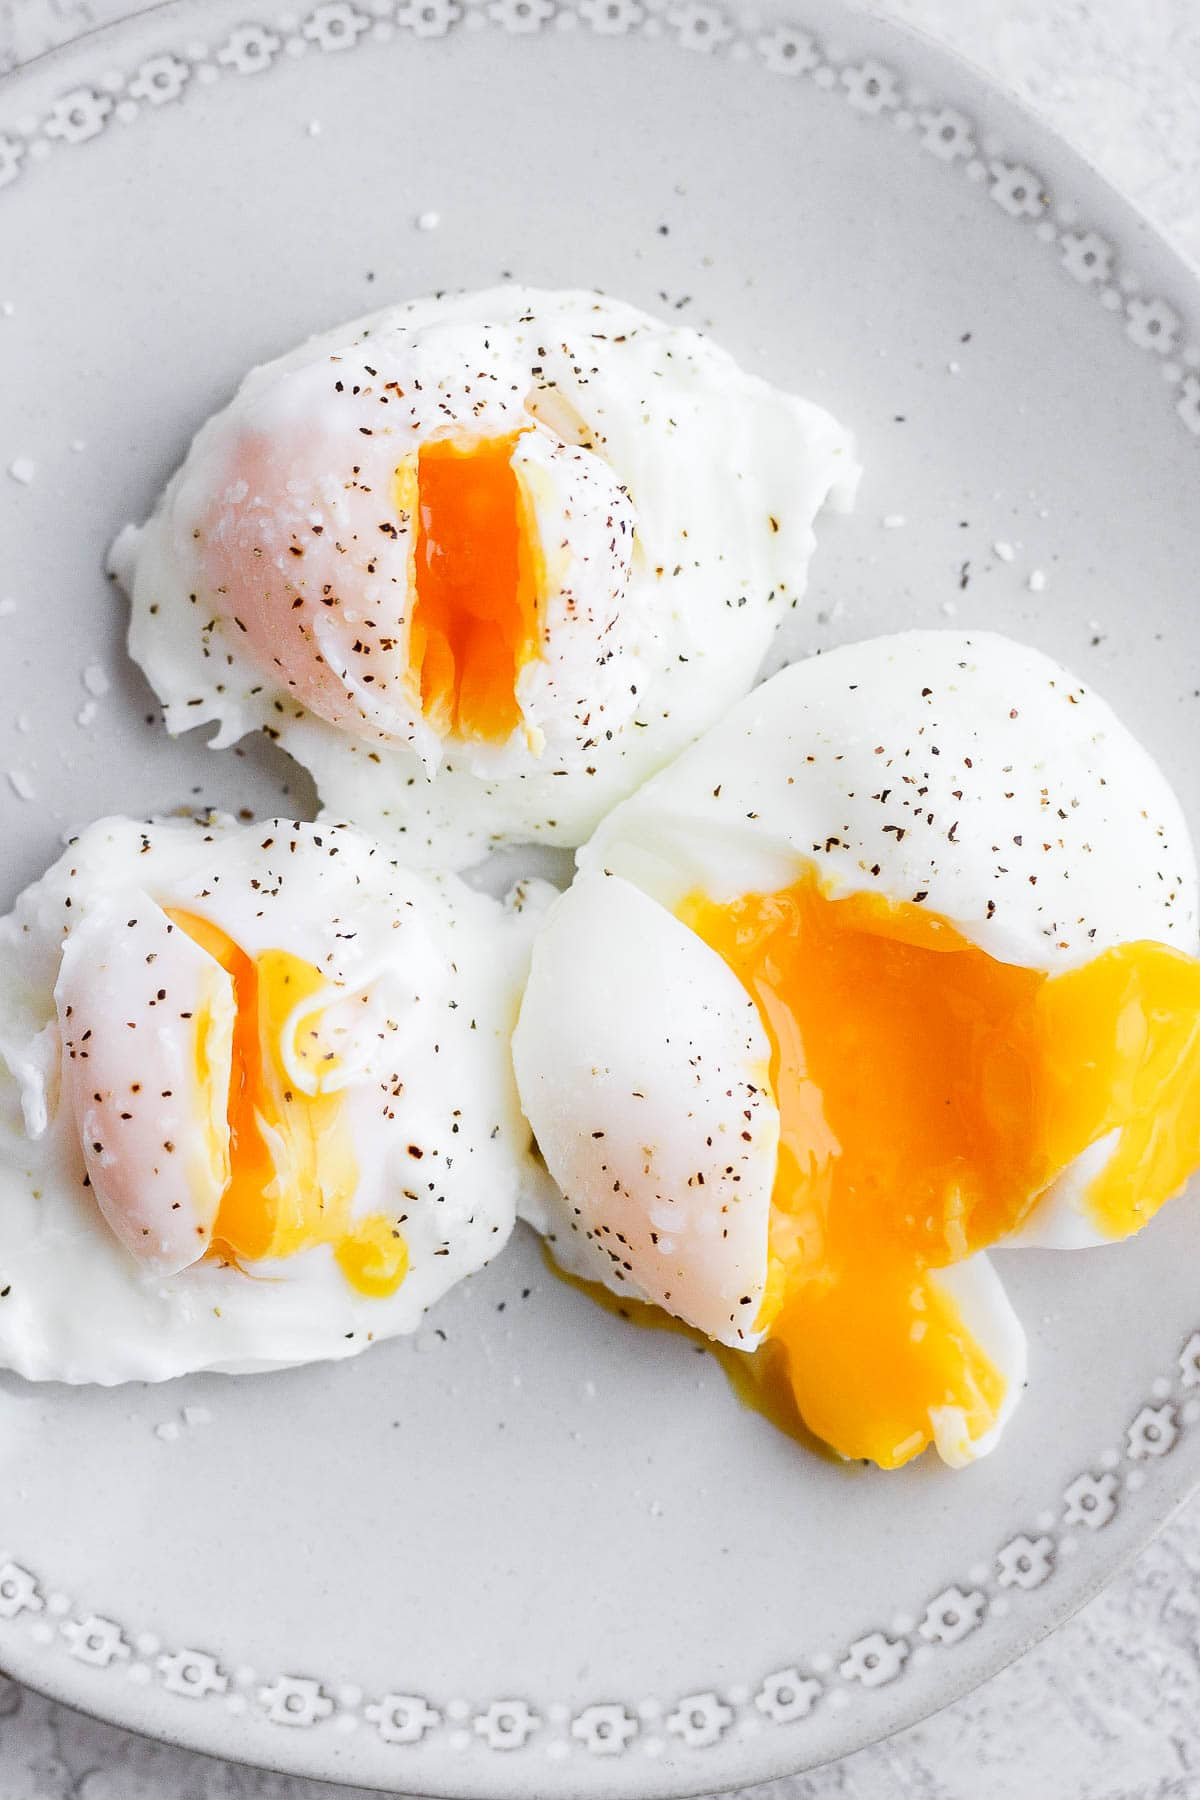 Three poached eggs on a plate.